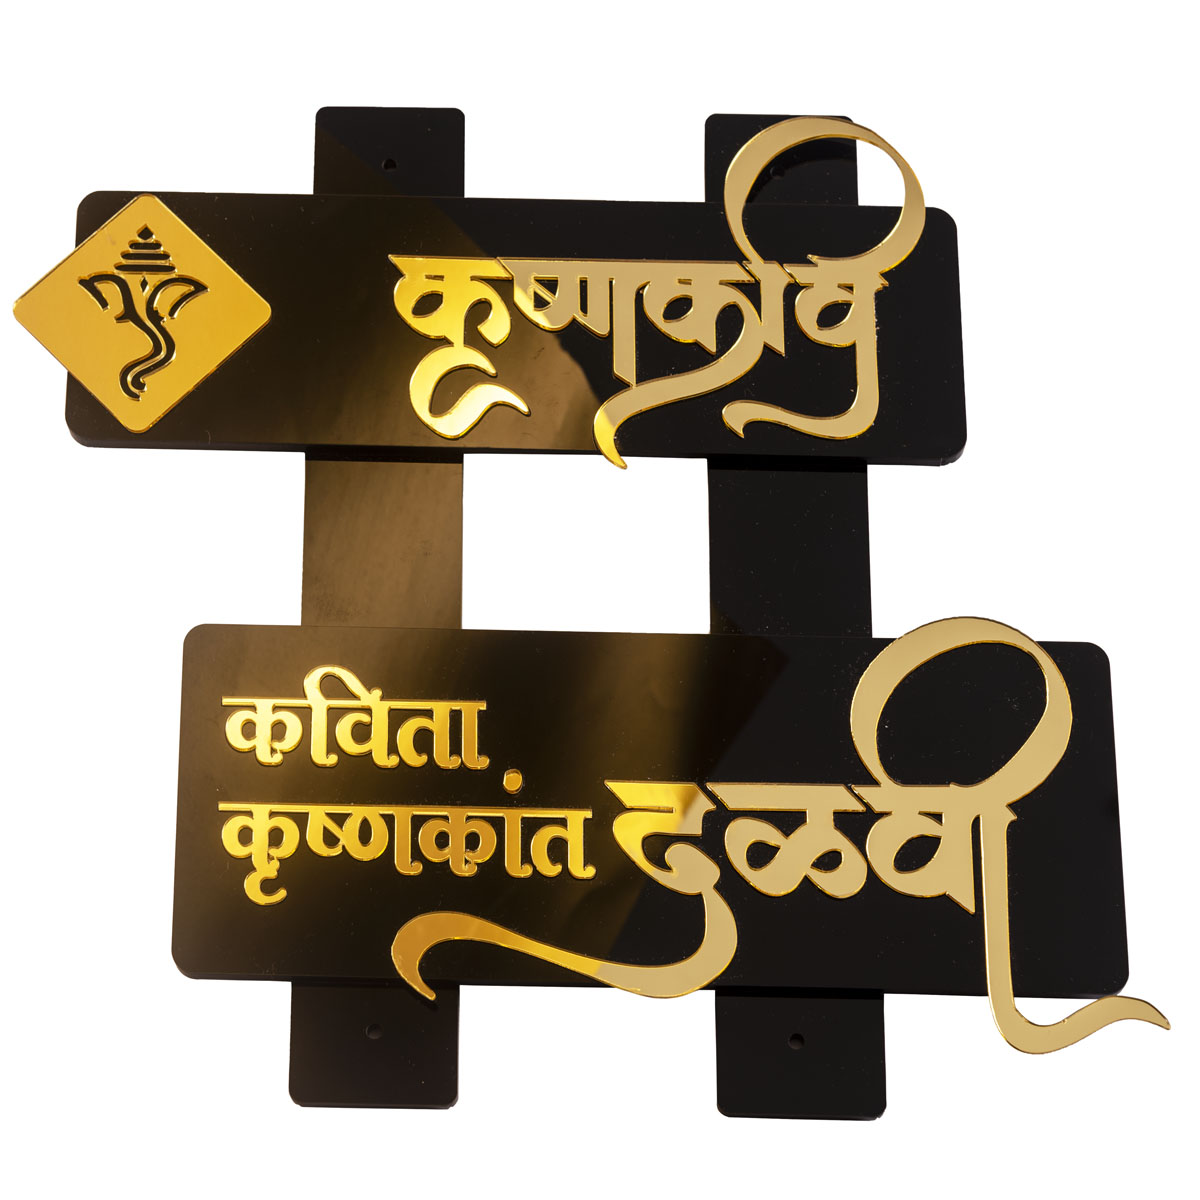 custom name plate made of gold letters in Marathi cut and pasted on a black acrylic base plate